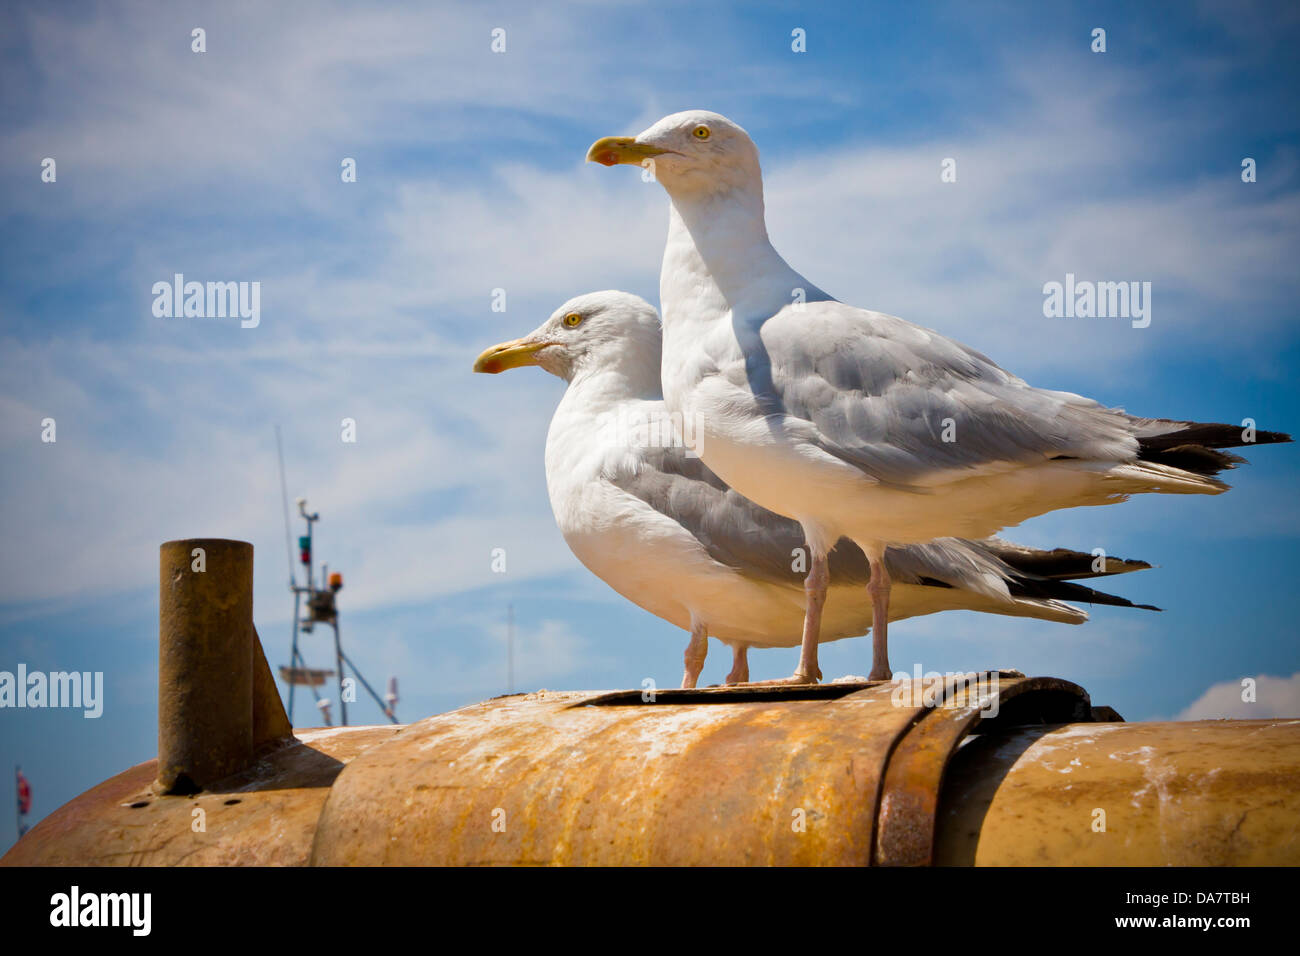 Two Herring Gulls standing on top of an industrial plant machine used to haul trawlers into the sea at Hastings - Stock Image